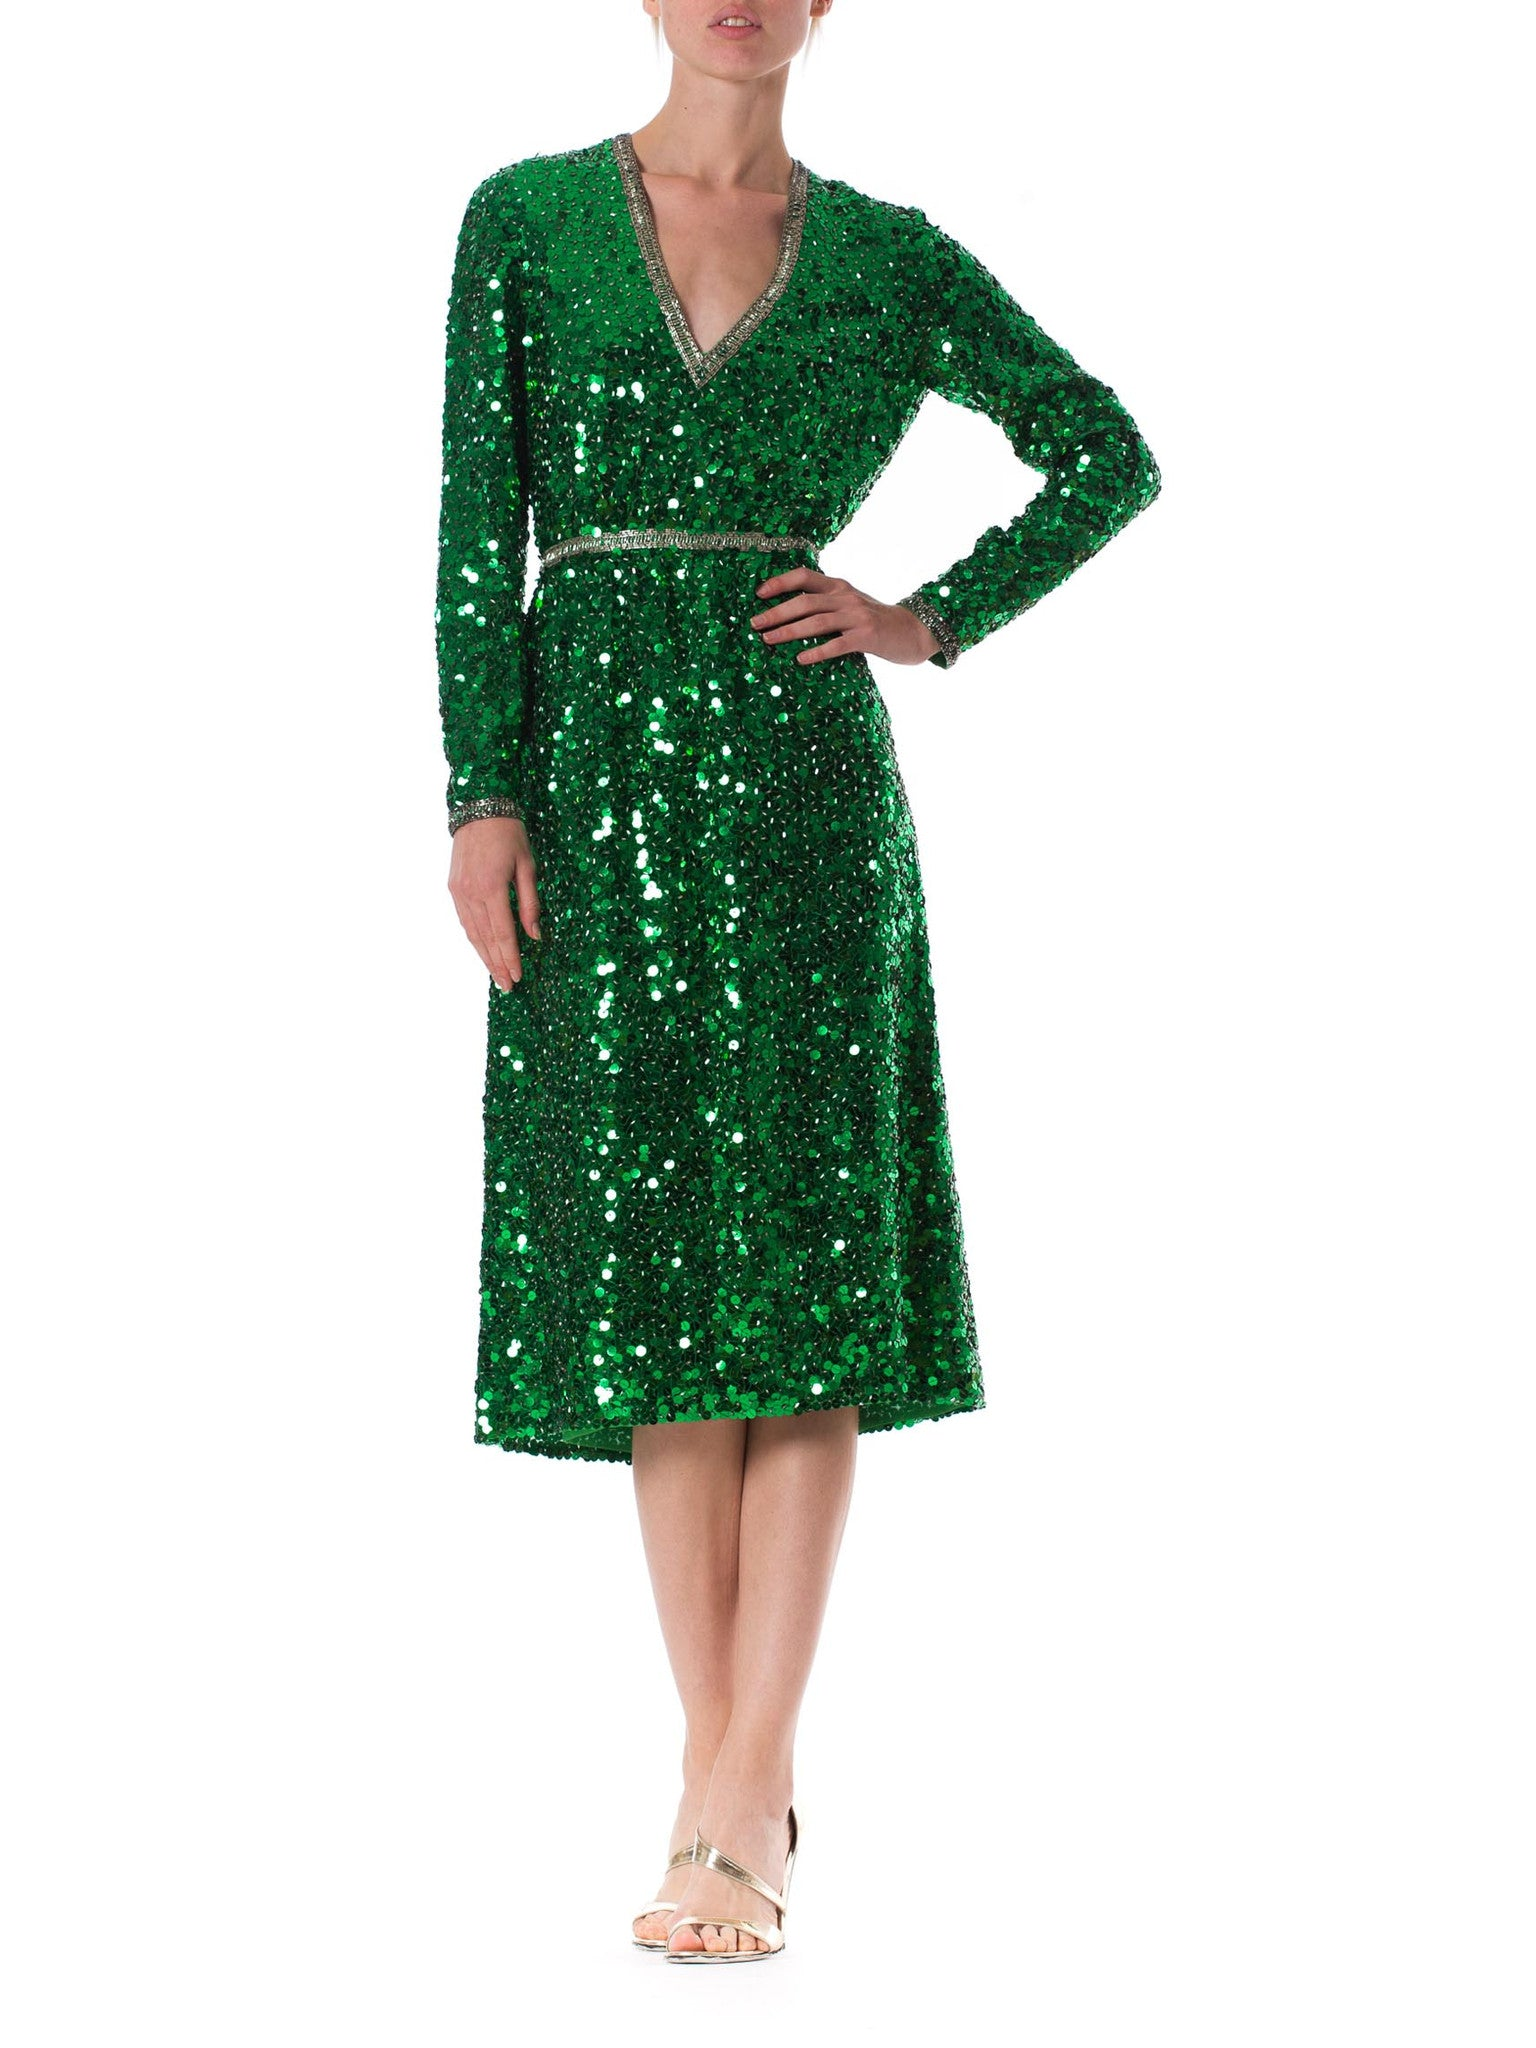 1970S Kelly Green Hand Beaded Polyester Long Sleeve Low Cut Cocktail Dress